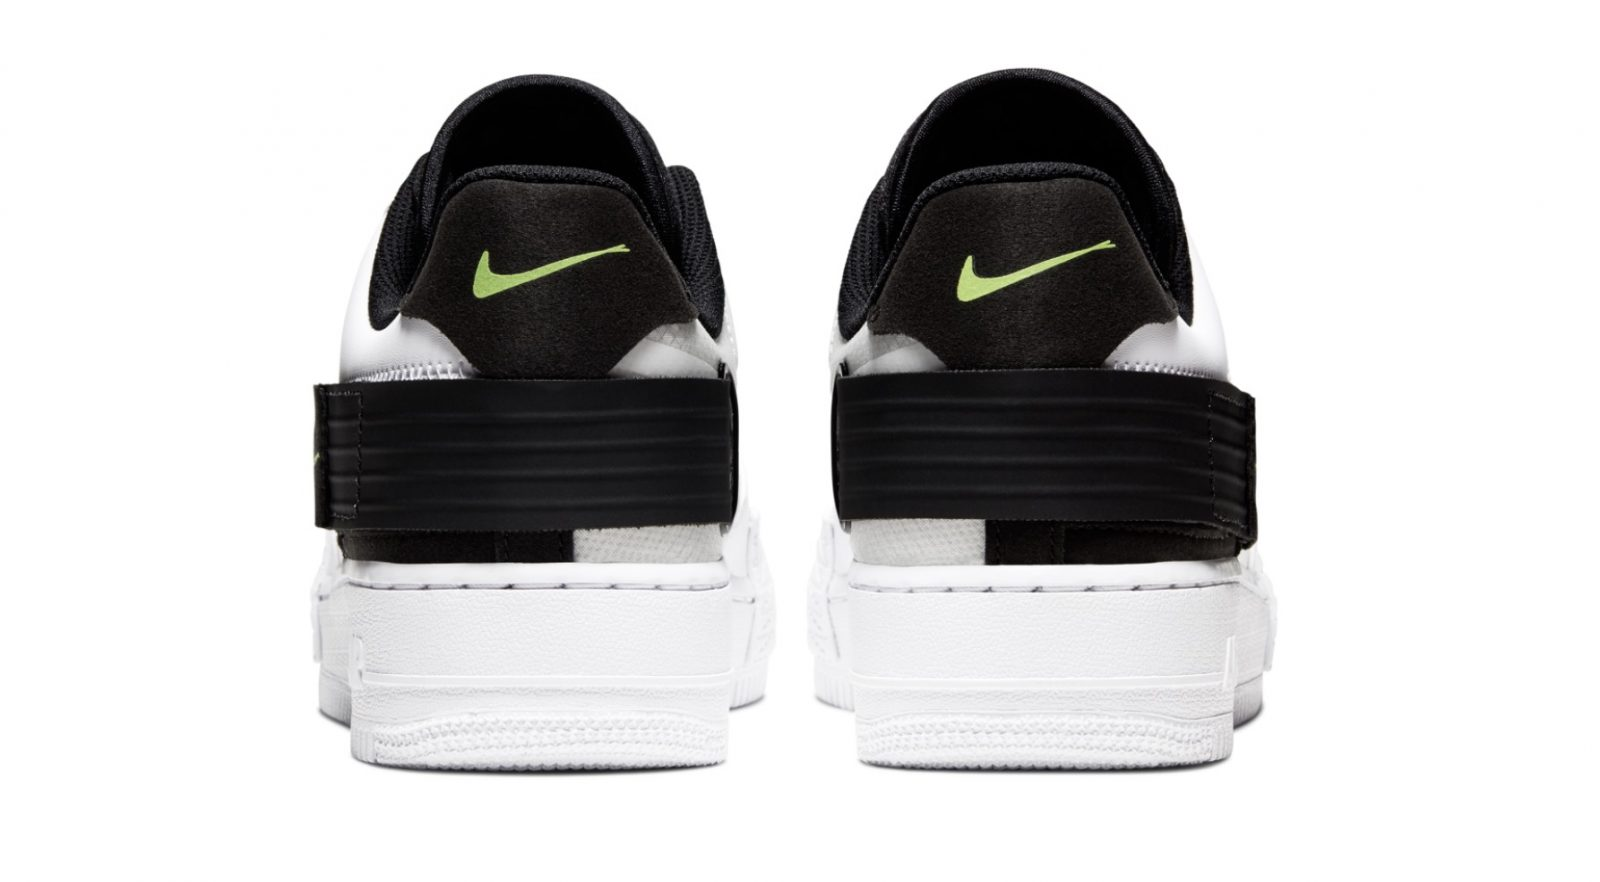 Go Monochrome With A Hint Of Neon With Nike's Latest Air Force 1 Type heel